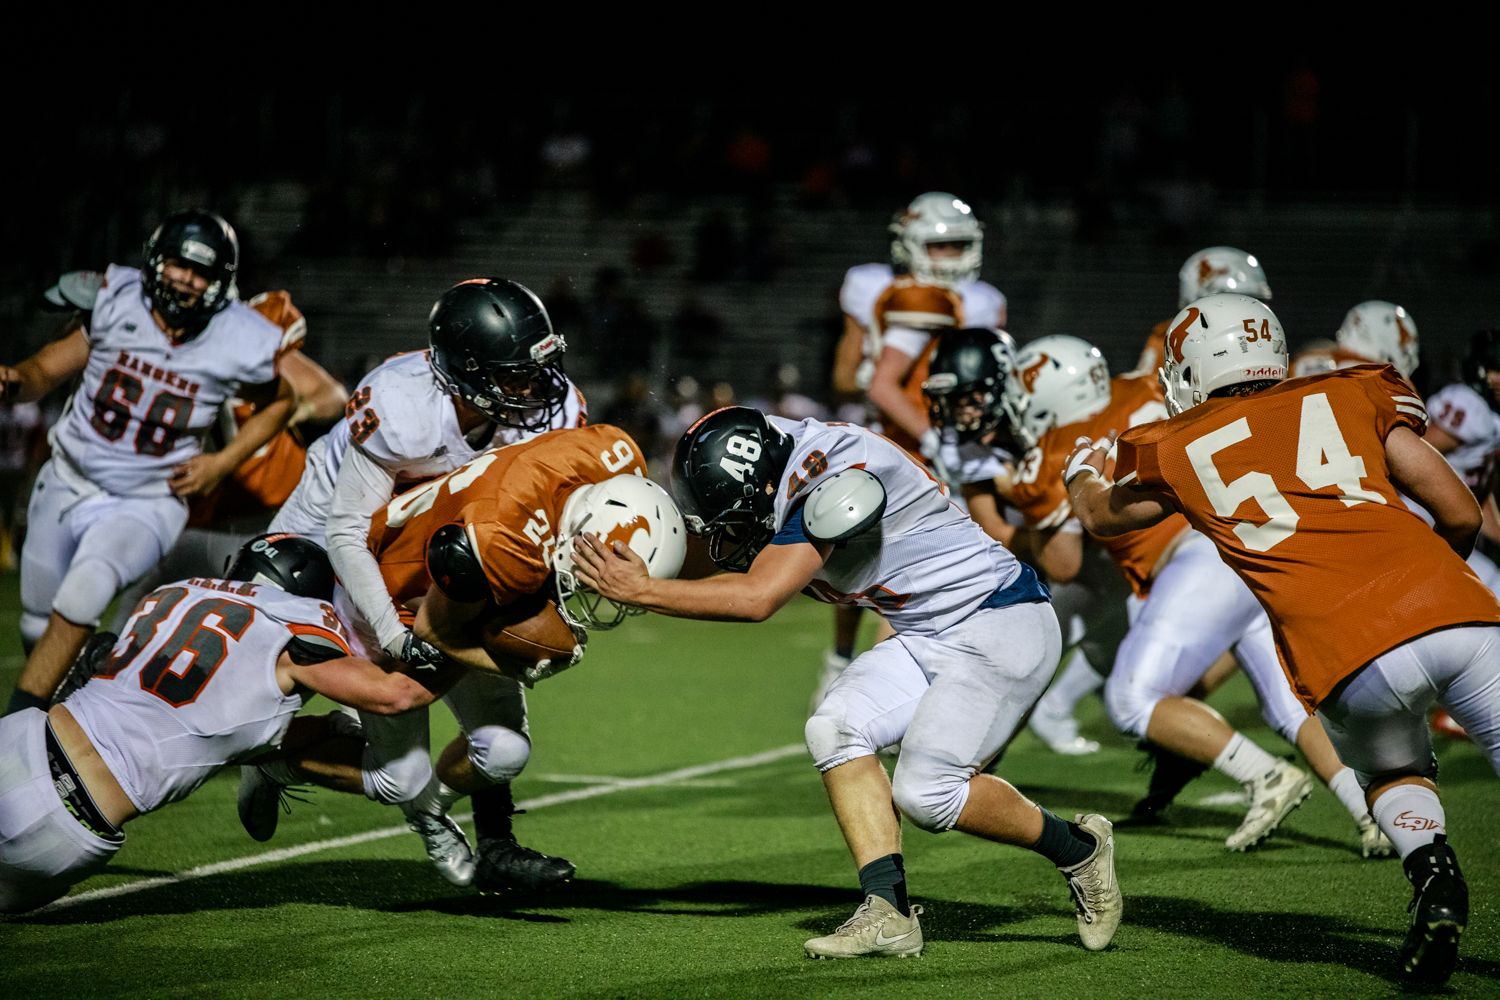 Running+back+%2326+Nathan+Bailey+fights+off+3+defenders+to+put+the+Mavs+in+scoring+distance.